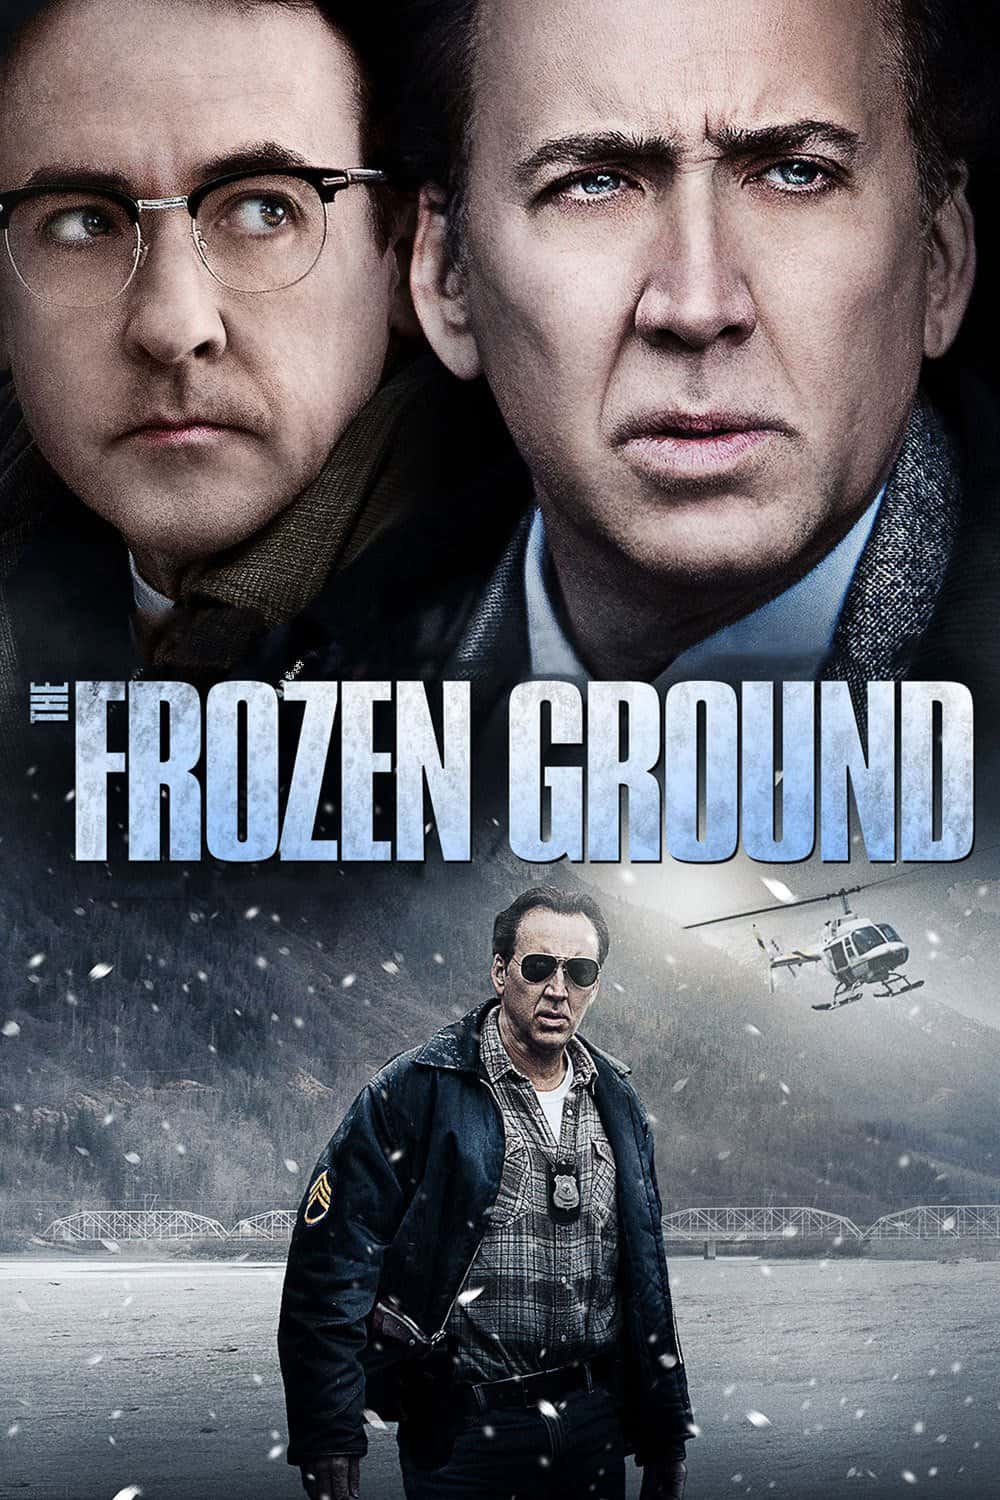 The Frozen Ground, 2013